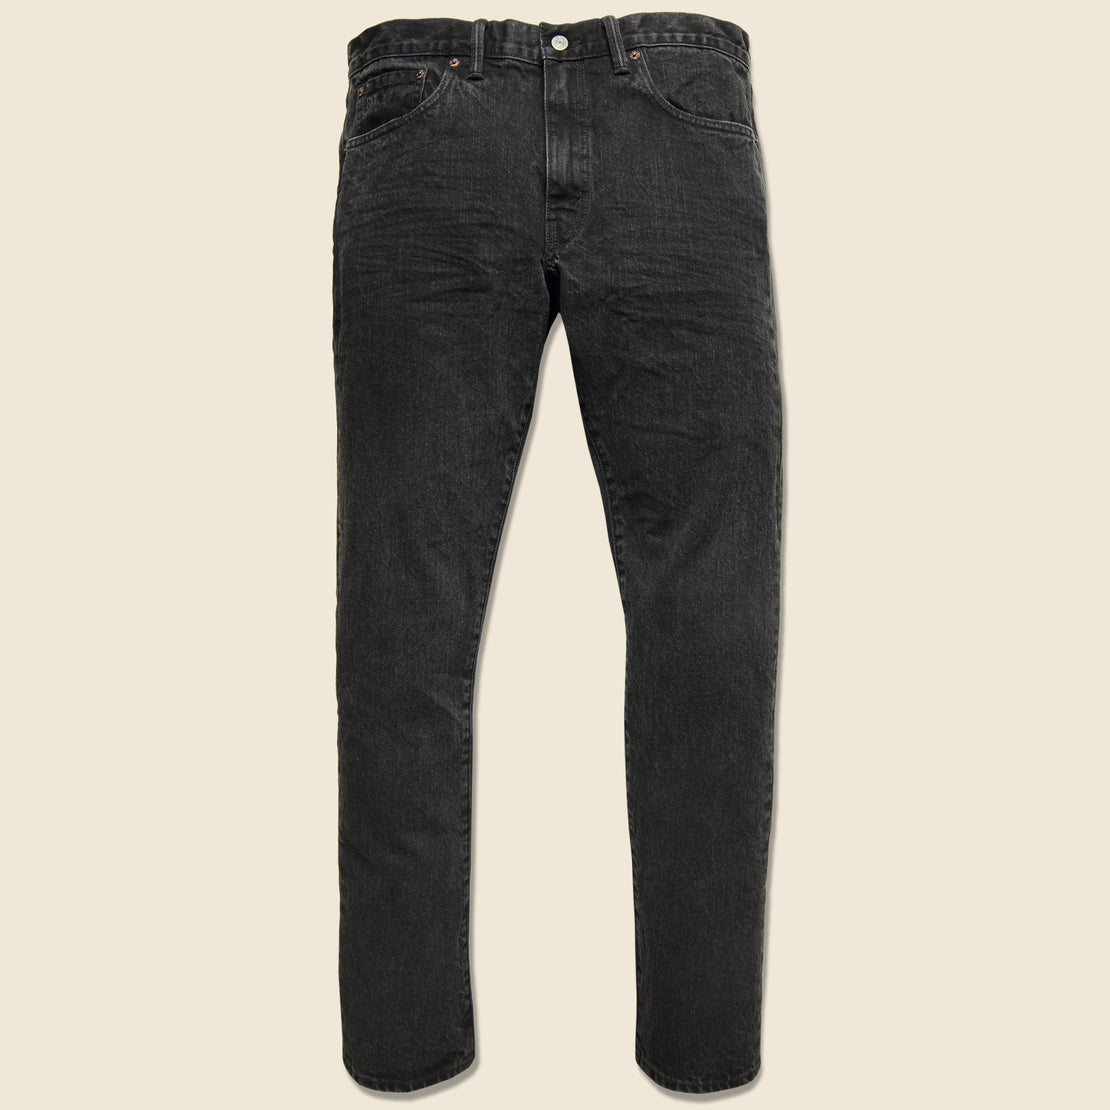 RRL Slim Narrow Jean - Worn-In Black